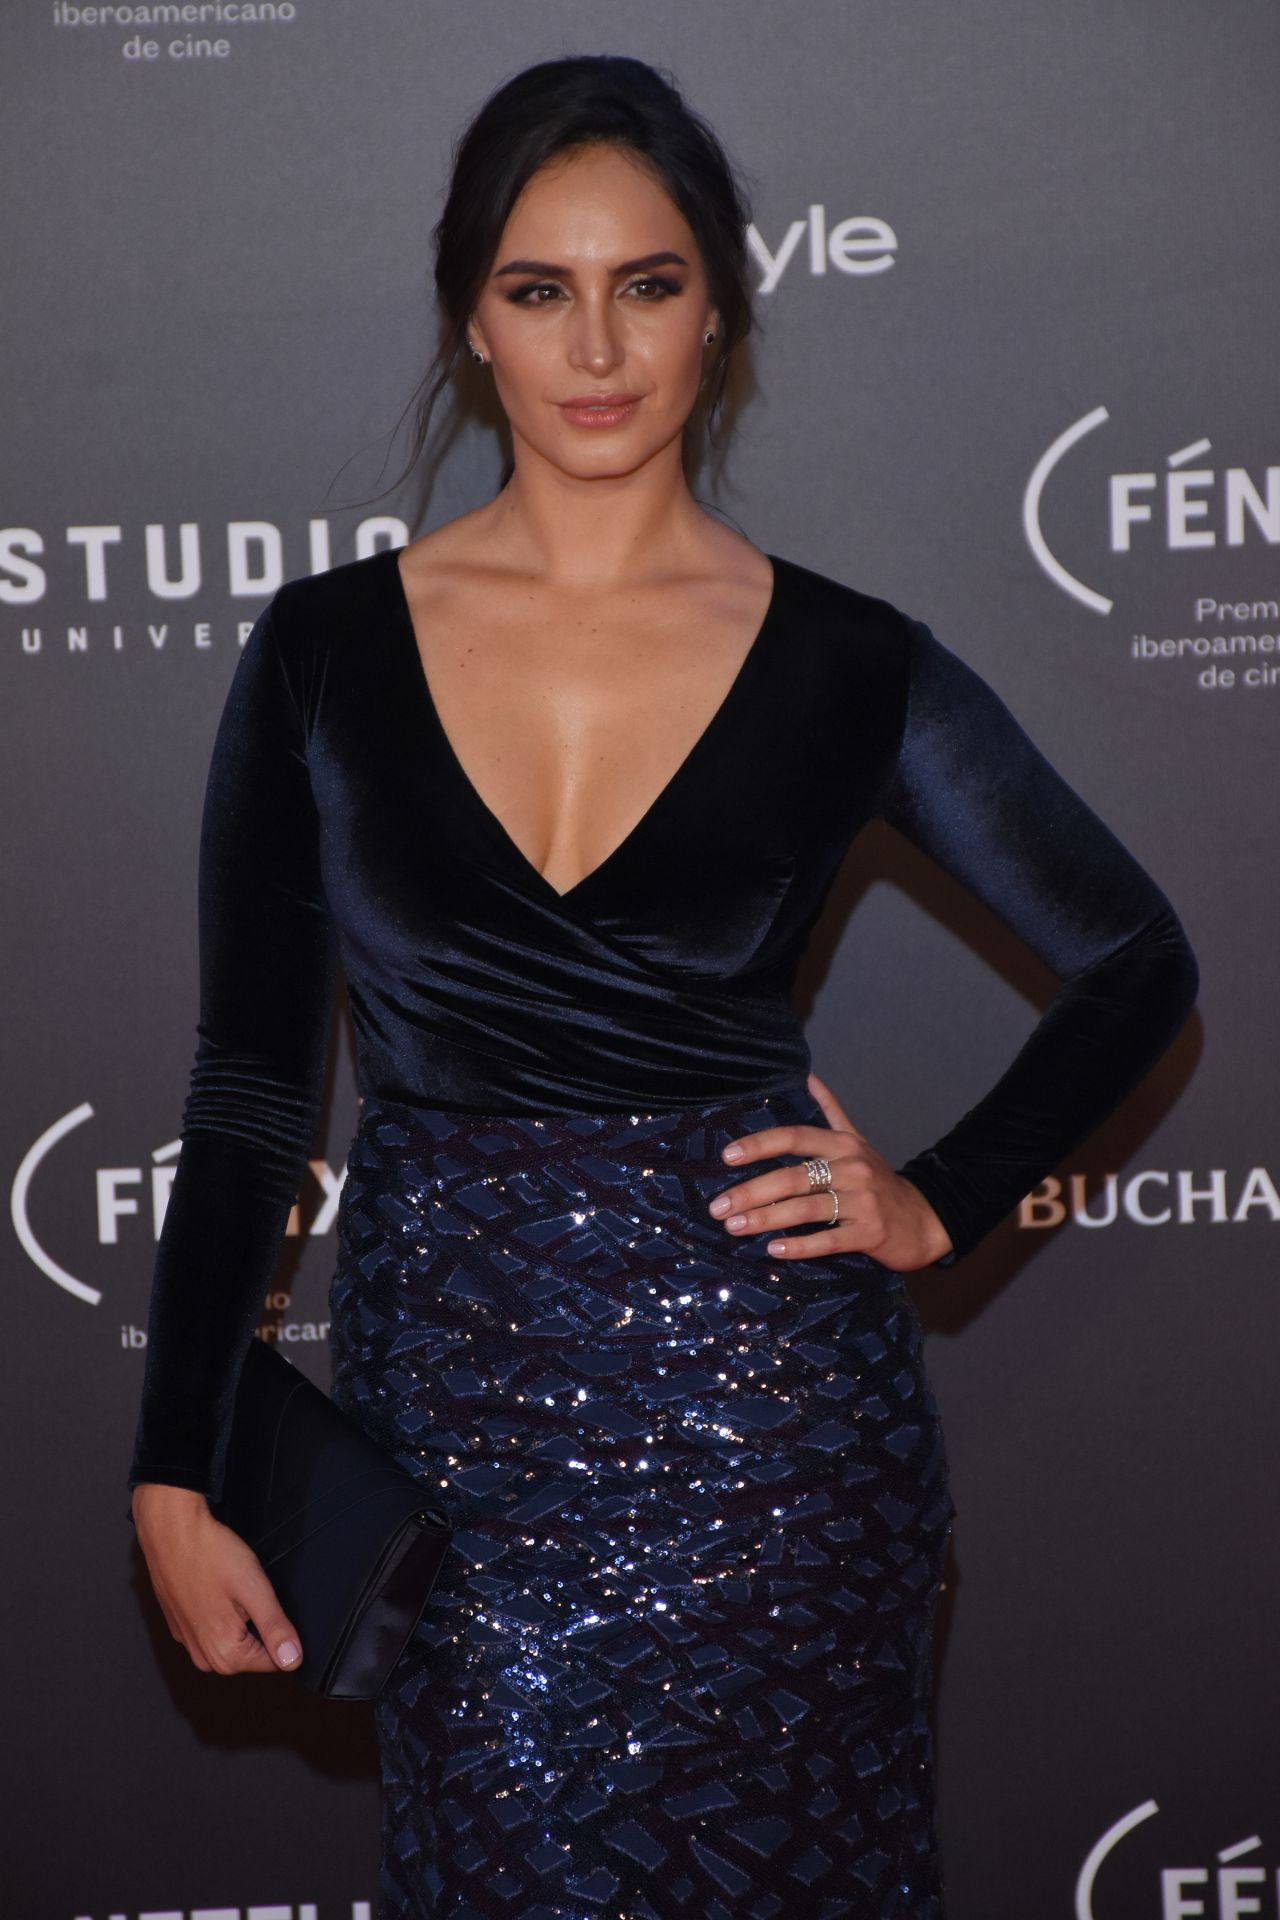 Fernanda Urrejola – Fenix Film Awards 2017 Red Carpet